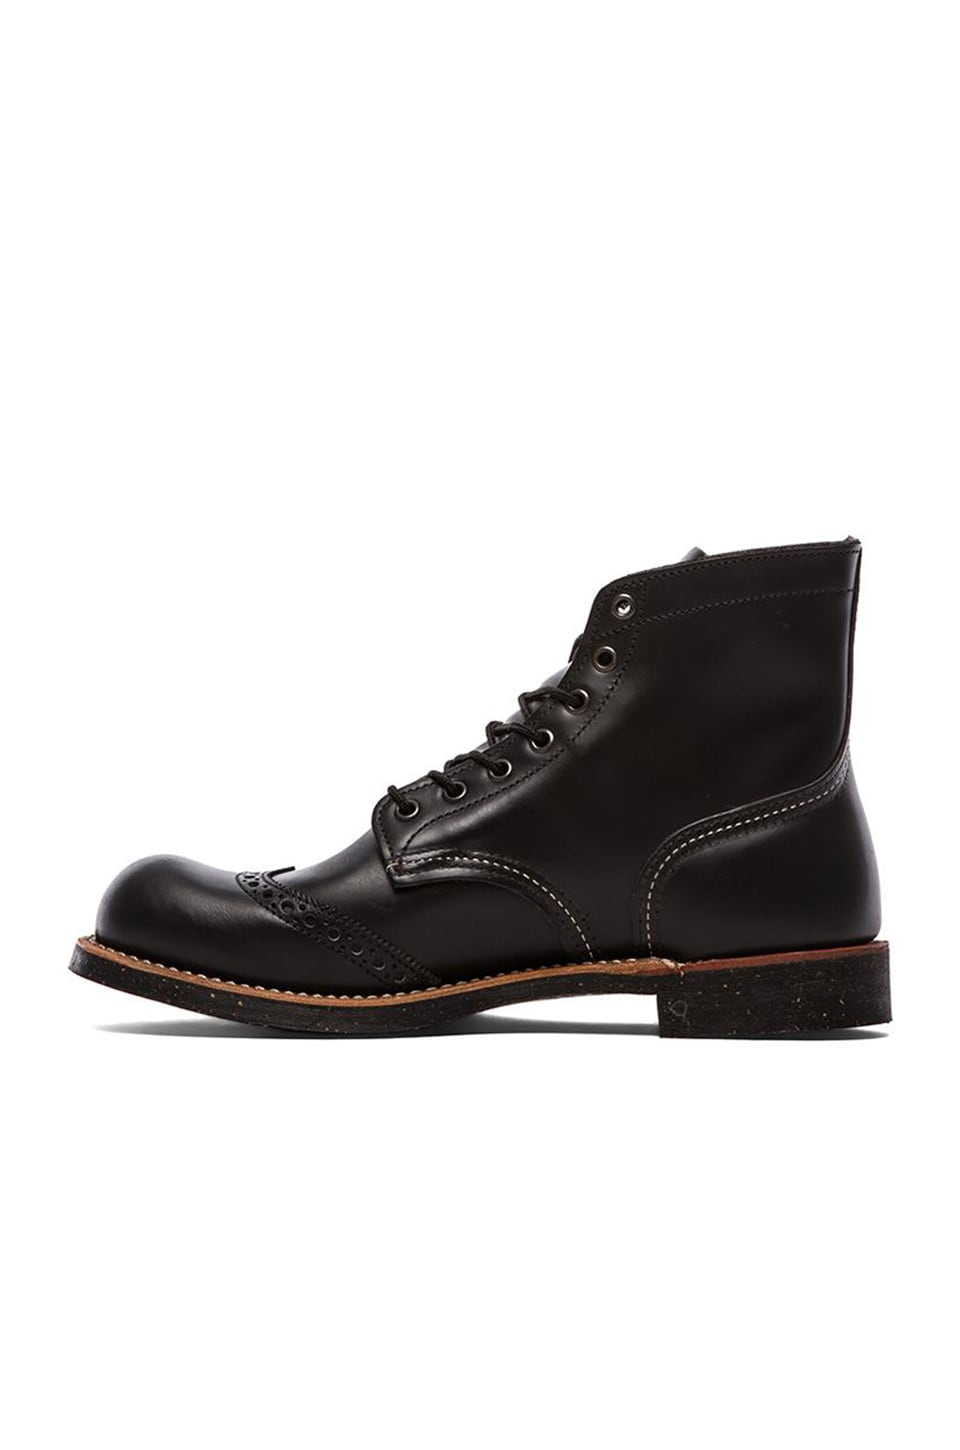 "Red Wing Shoes 6"" Brogue Ranger in Black Chapparral"